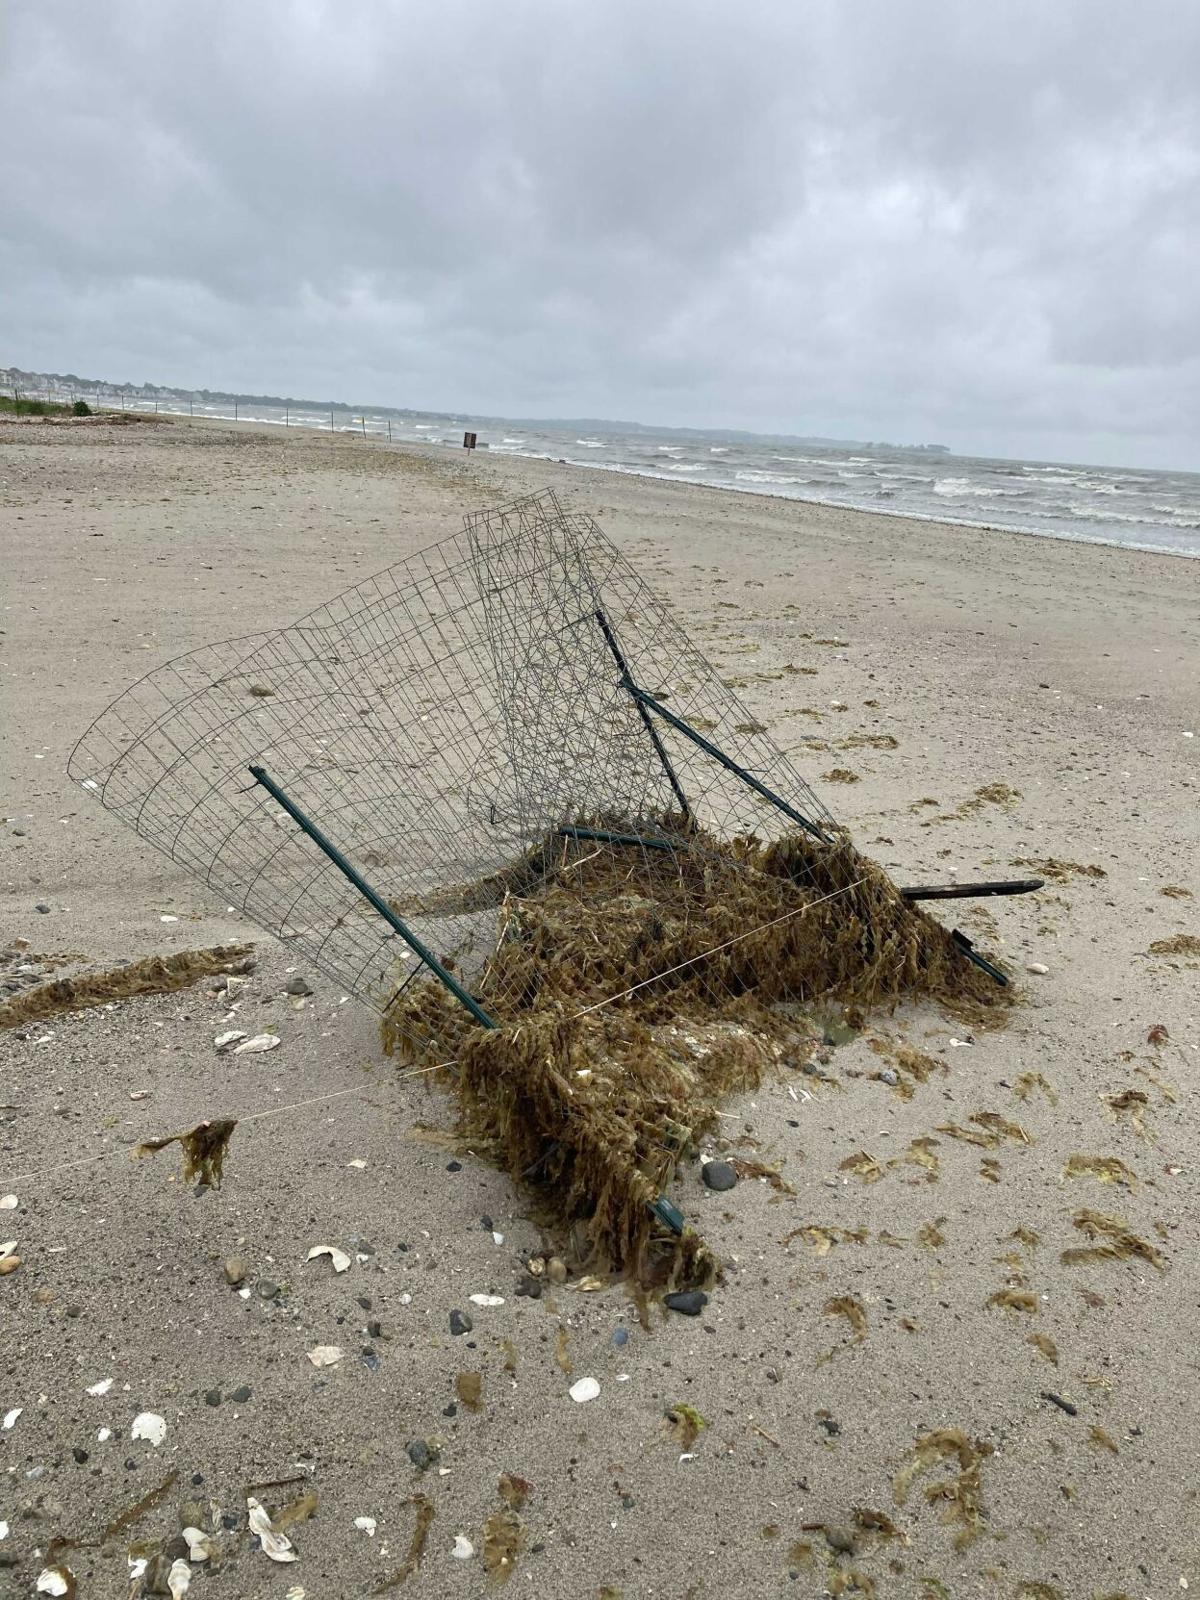 Piping Plover nest exclosure after the memorial day weekend storms.